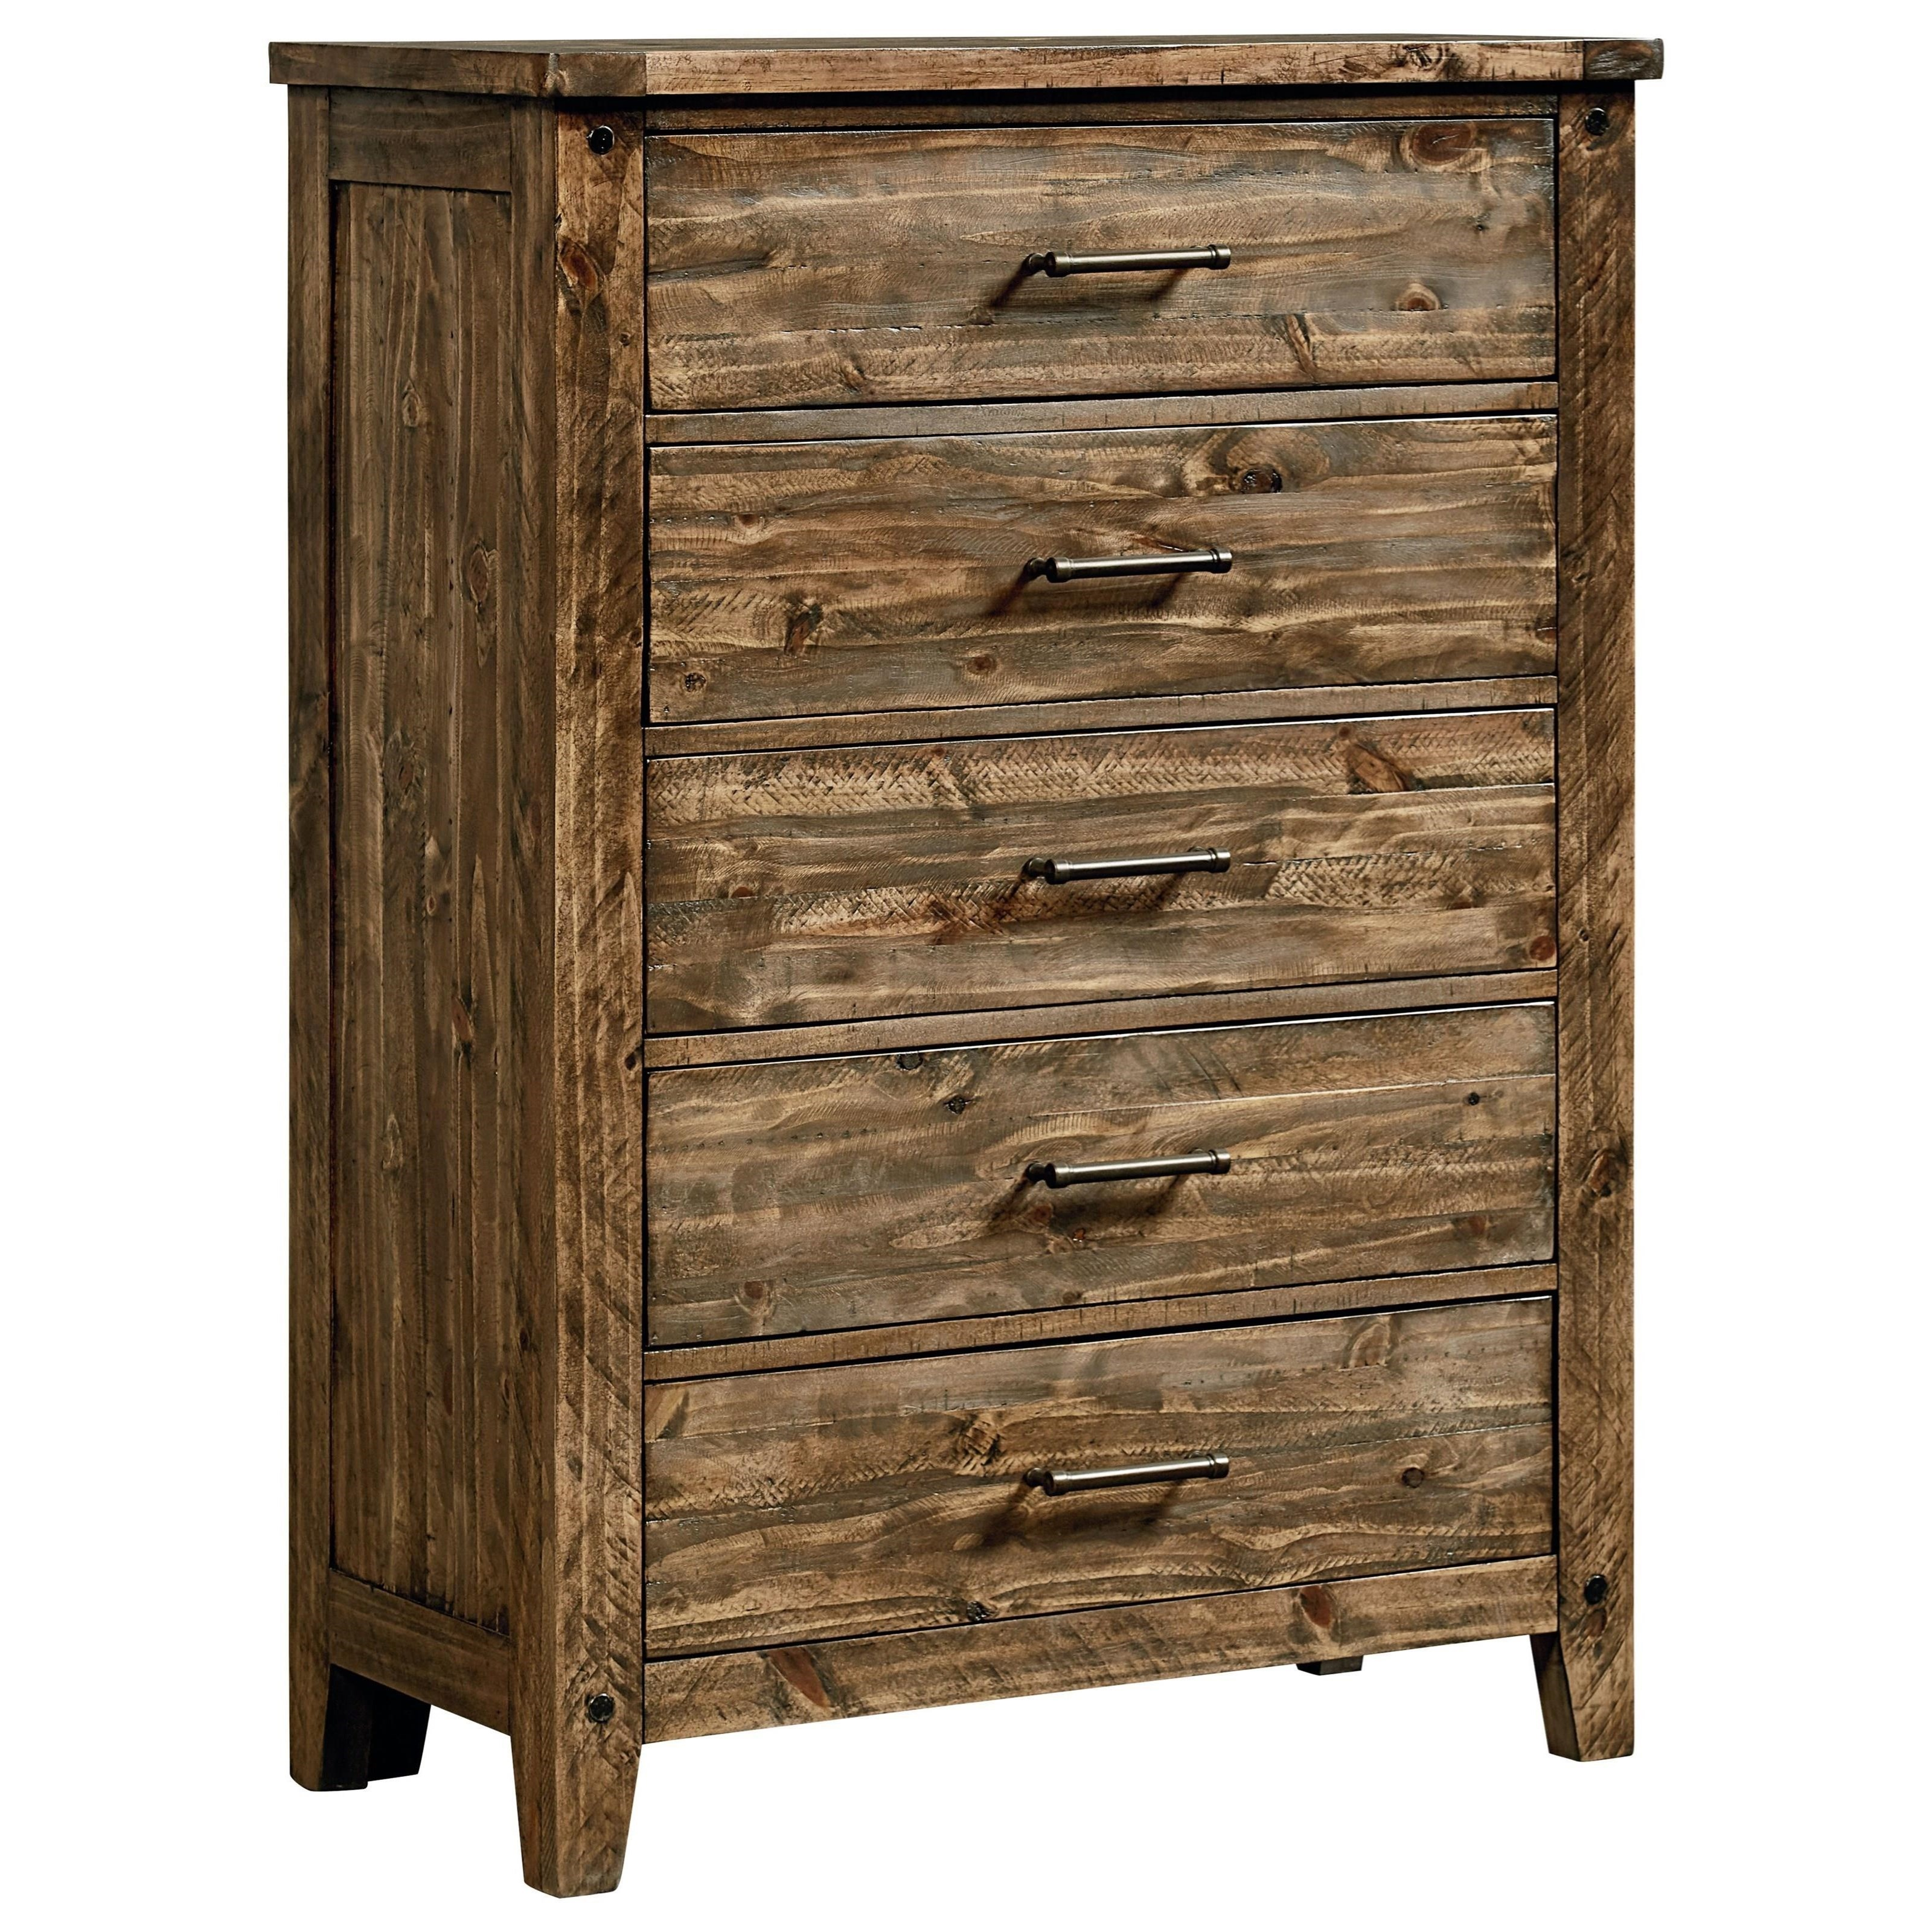 Standard Furniture Nelson 92505 Rustic Five Drawer Chest